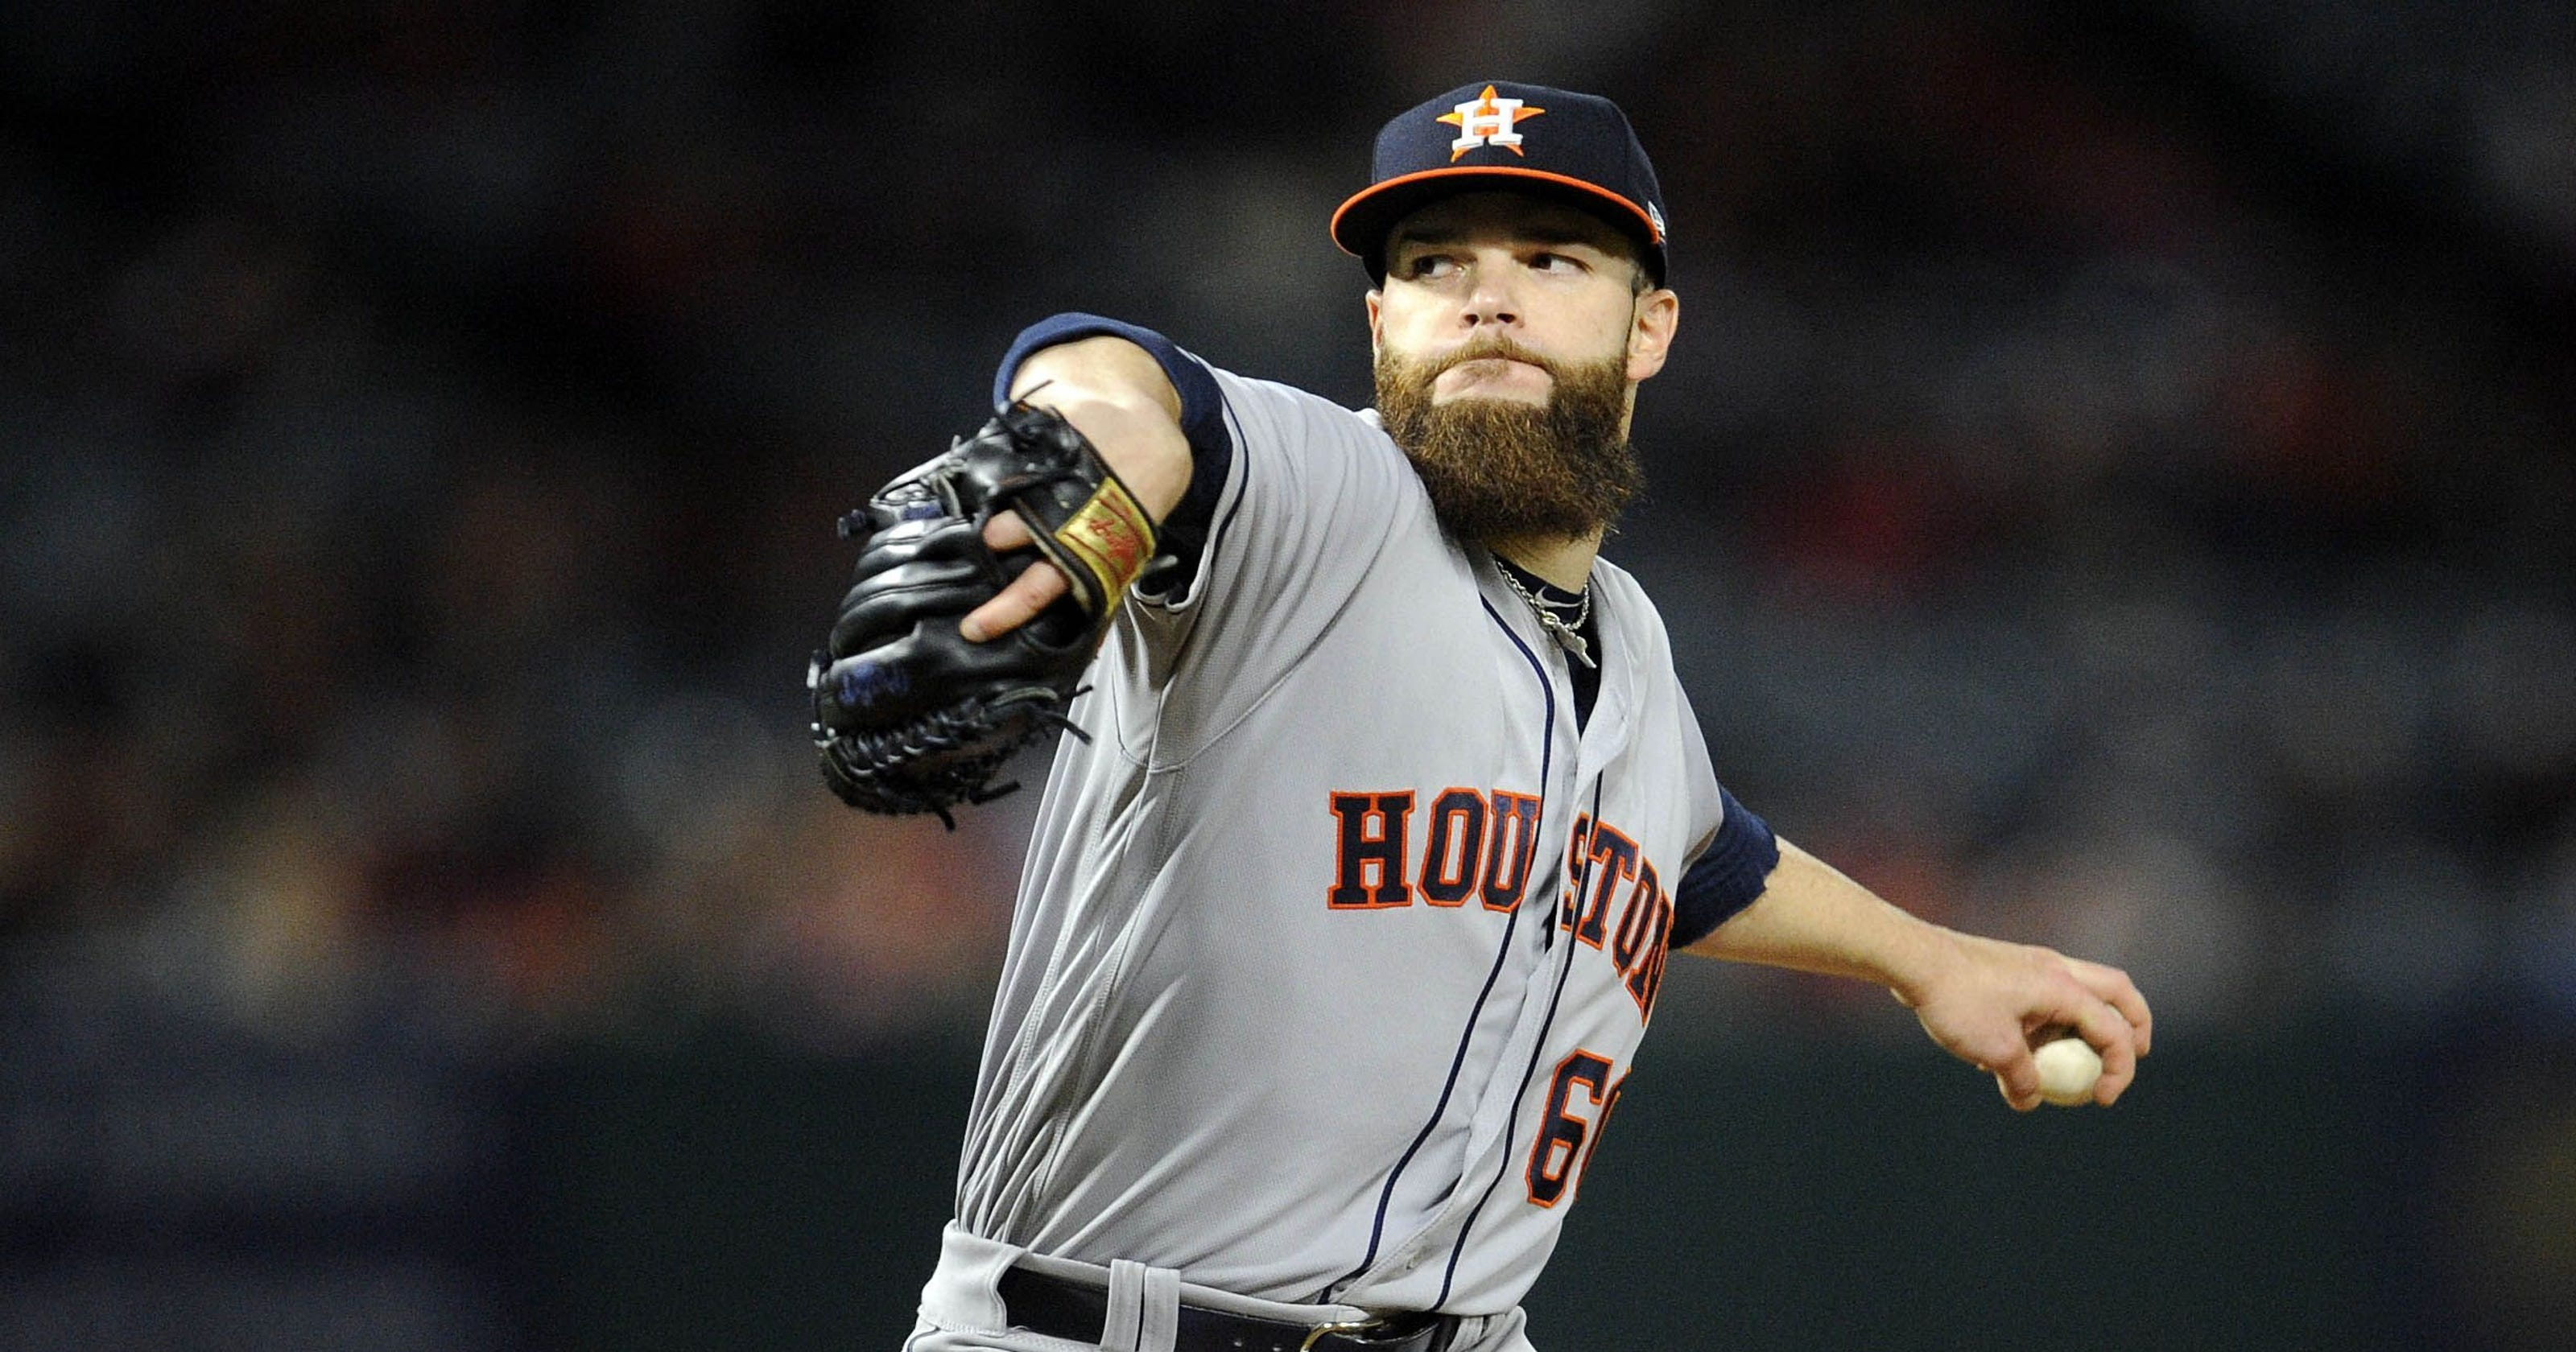 161460fb95f Week 6 MLB power rankings  Astros overtake Nationals for No. 1 spot